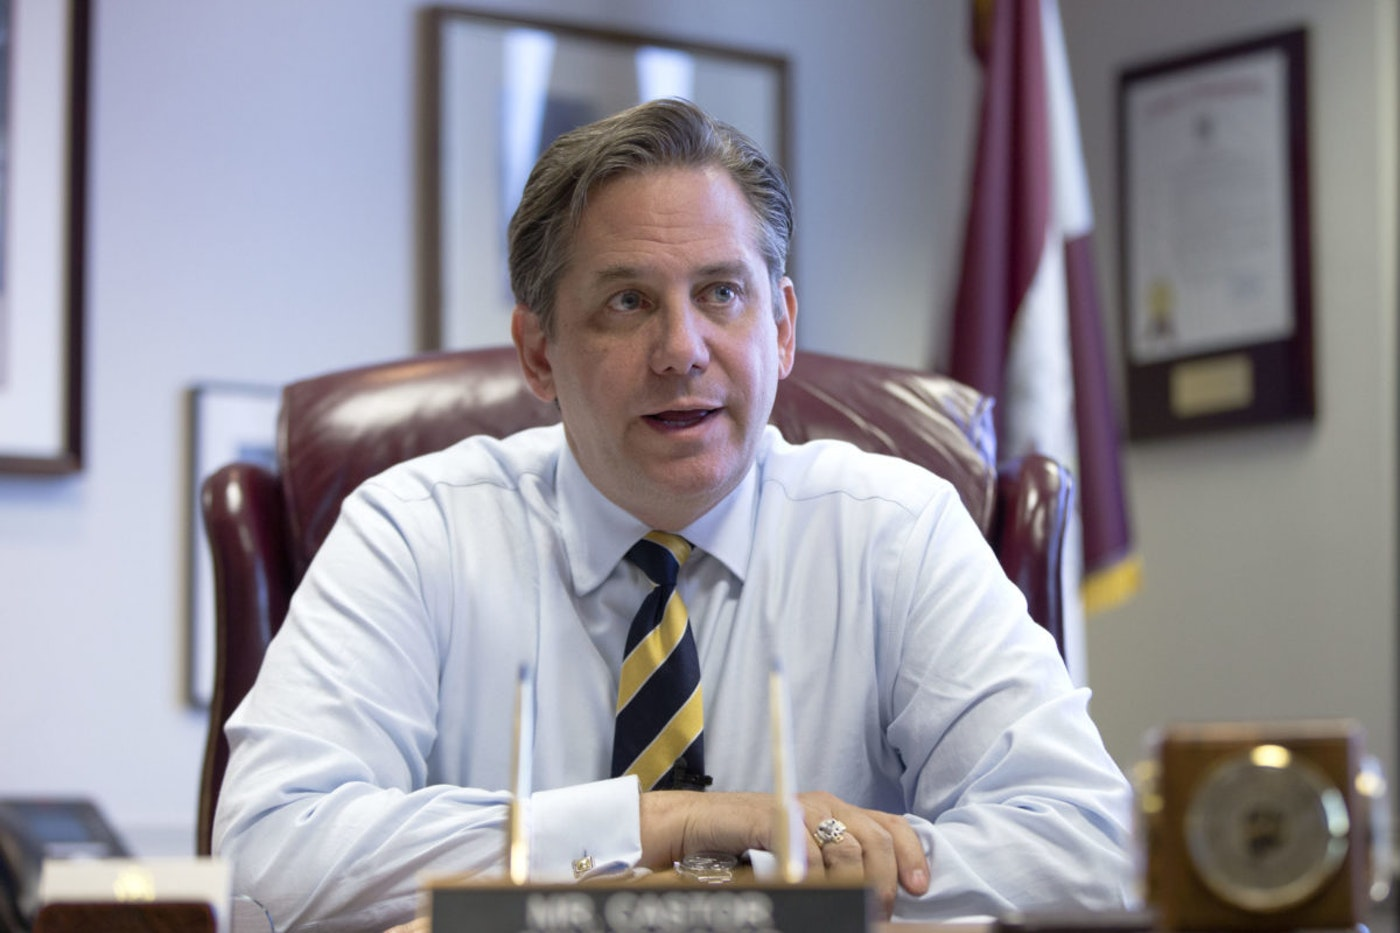 Bruce Castor, a former Montgomery County District Attorney and Commissioner, speaks during an interview with The Associated Press in 2014, in Norristown, Montgomery County. (AP Photo/Matt Rourke)